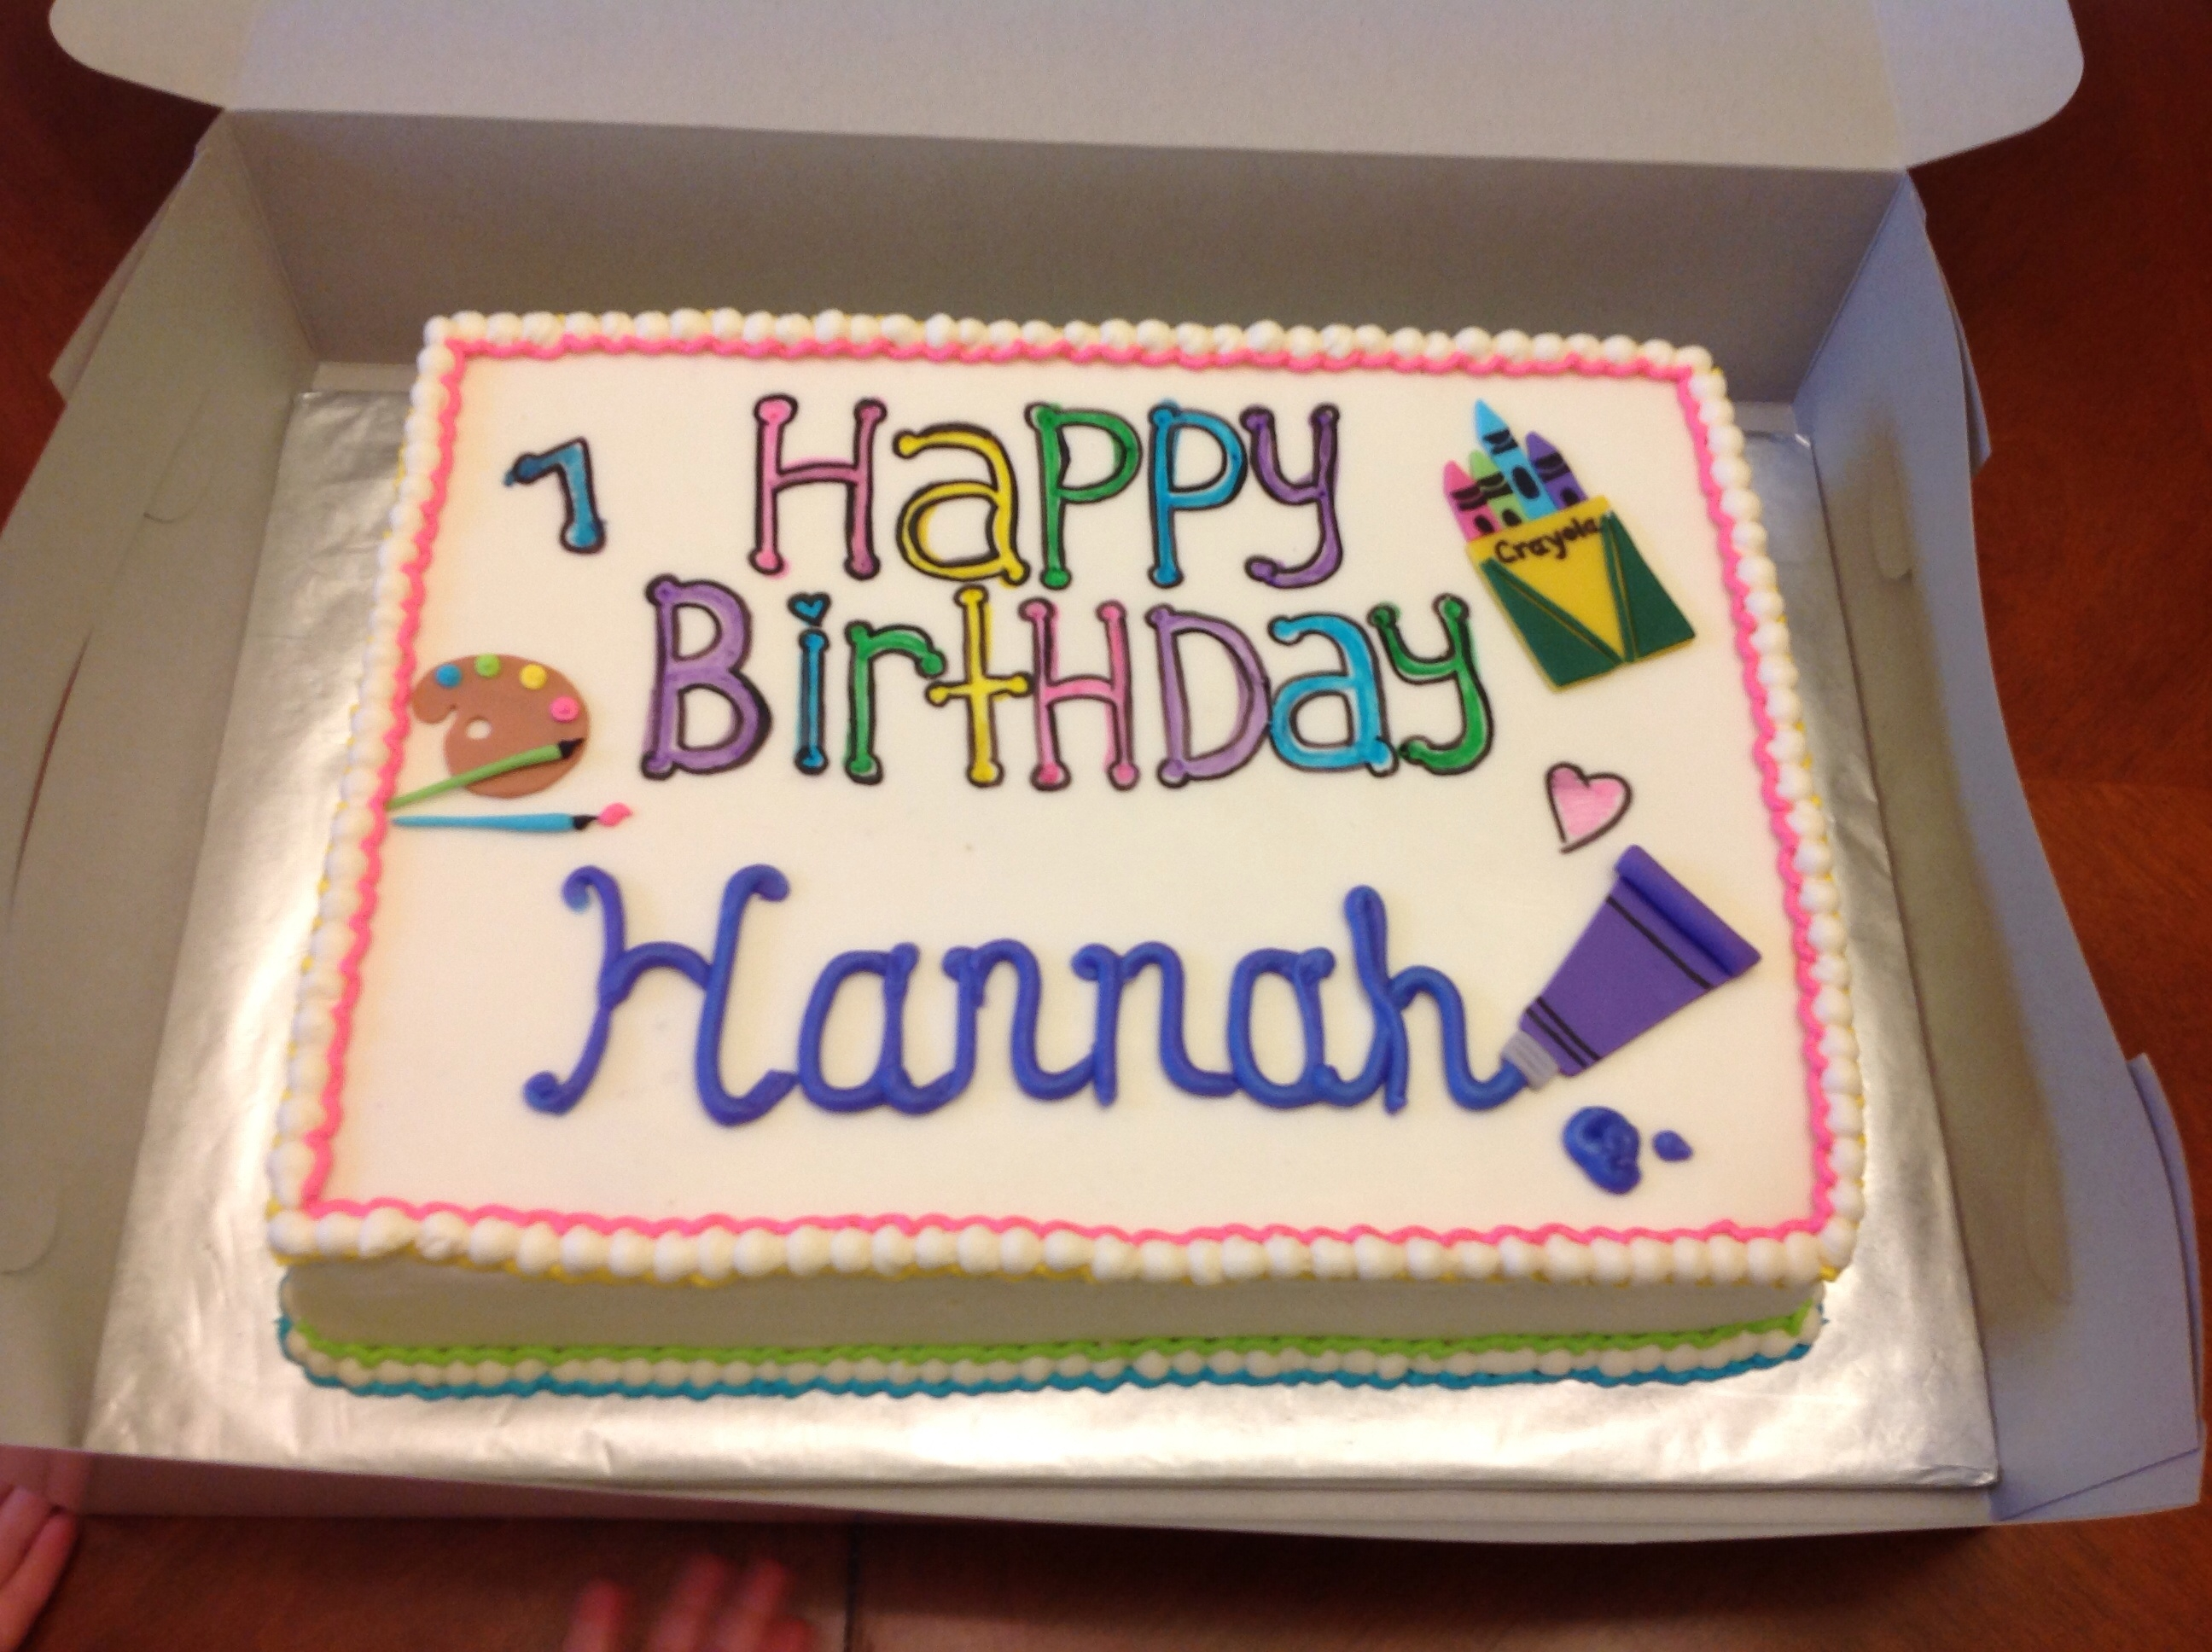 Twinkle Sprinkle Cake Decoration Edible Marker : Fondant Sheet On Top Of Cake With Edible Marker Letters ...